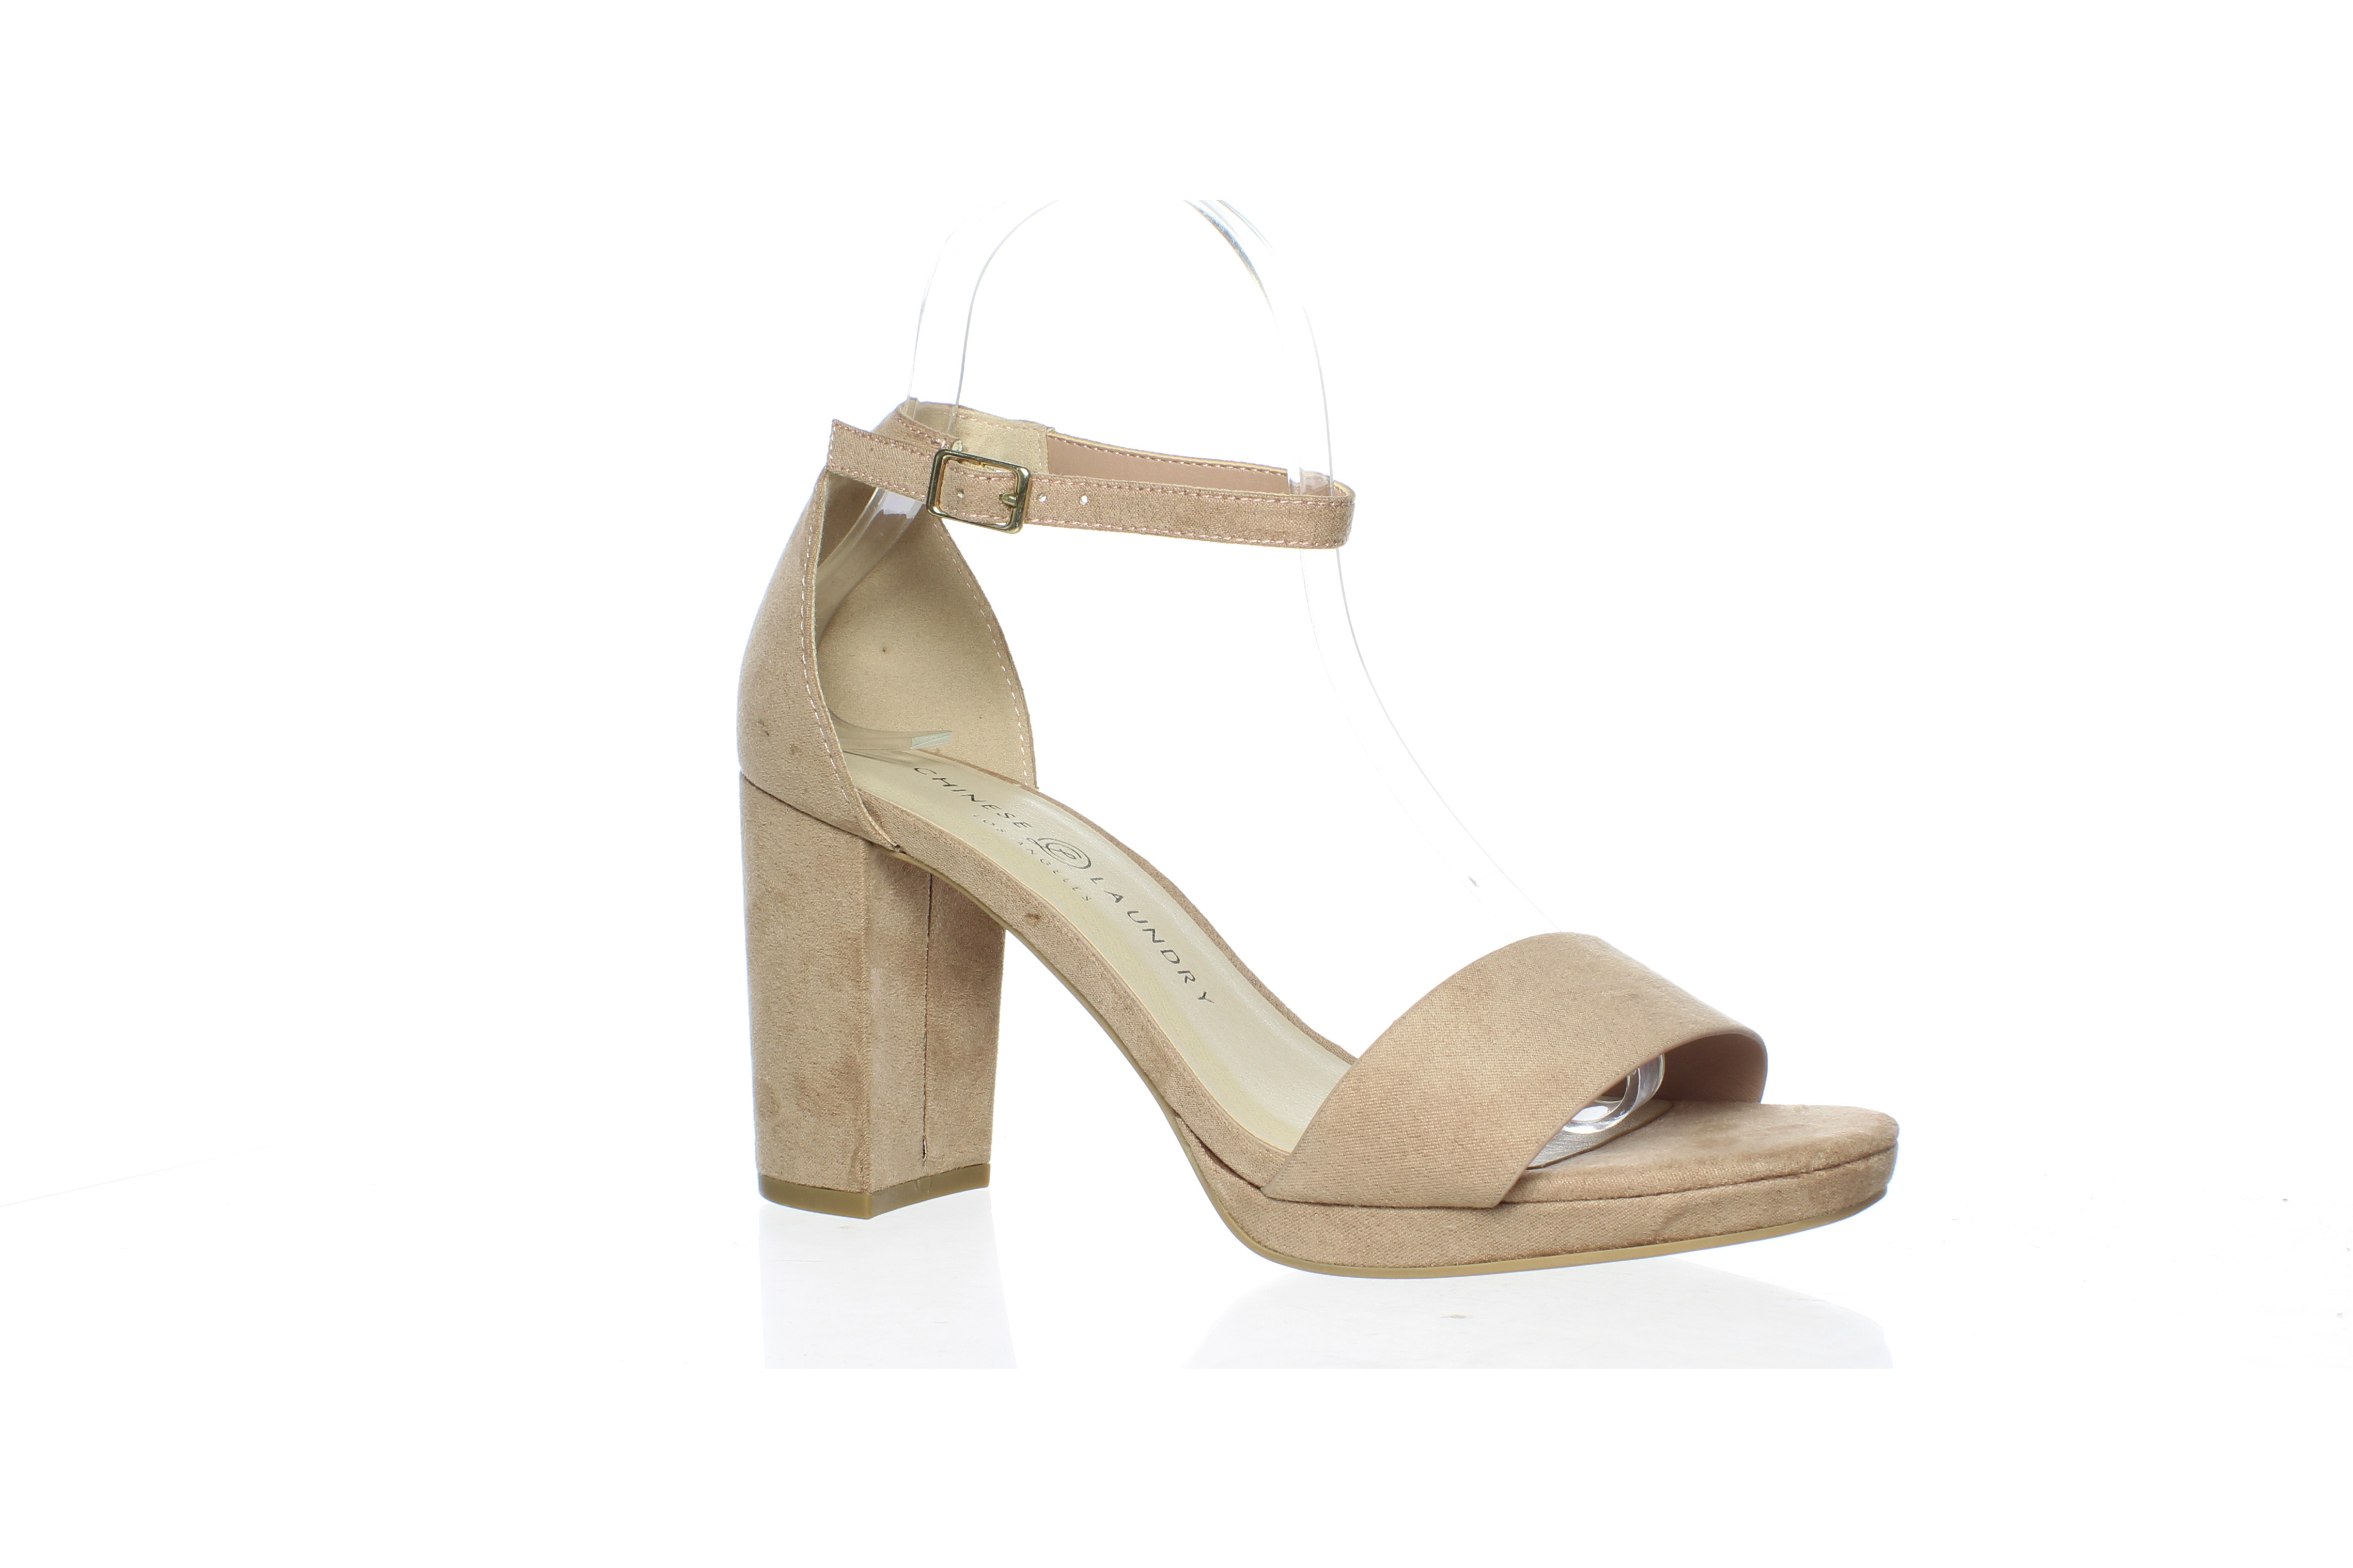 Chinese Laundry Womens Teri Dark Nude Ankle Strap Heels